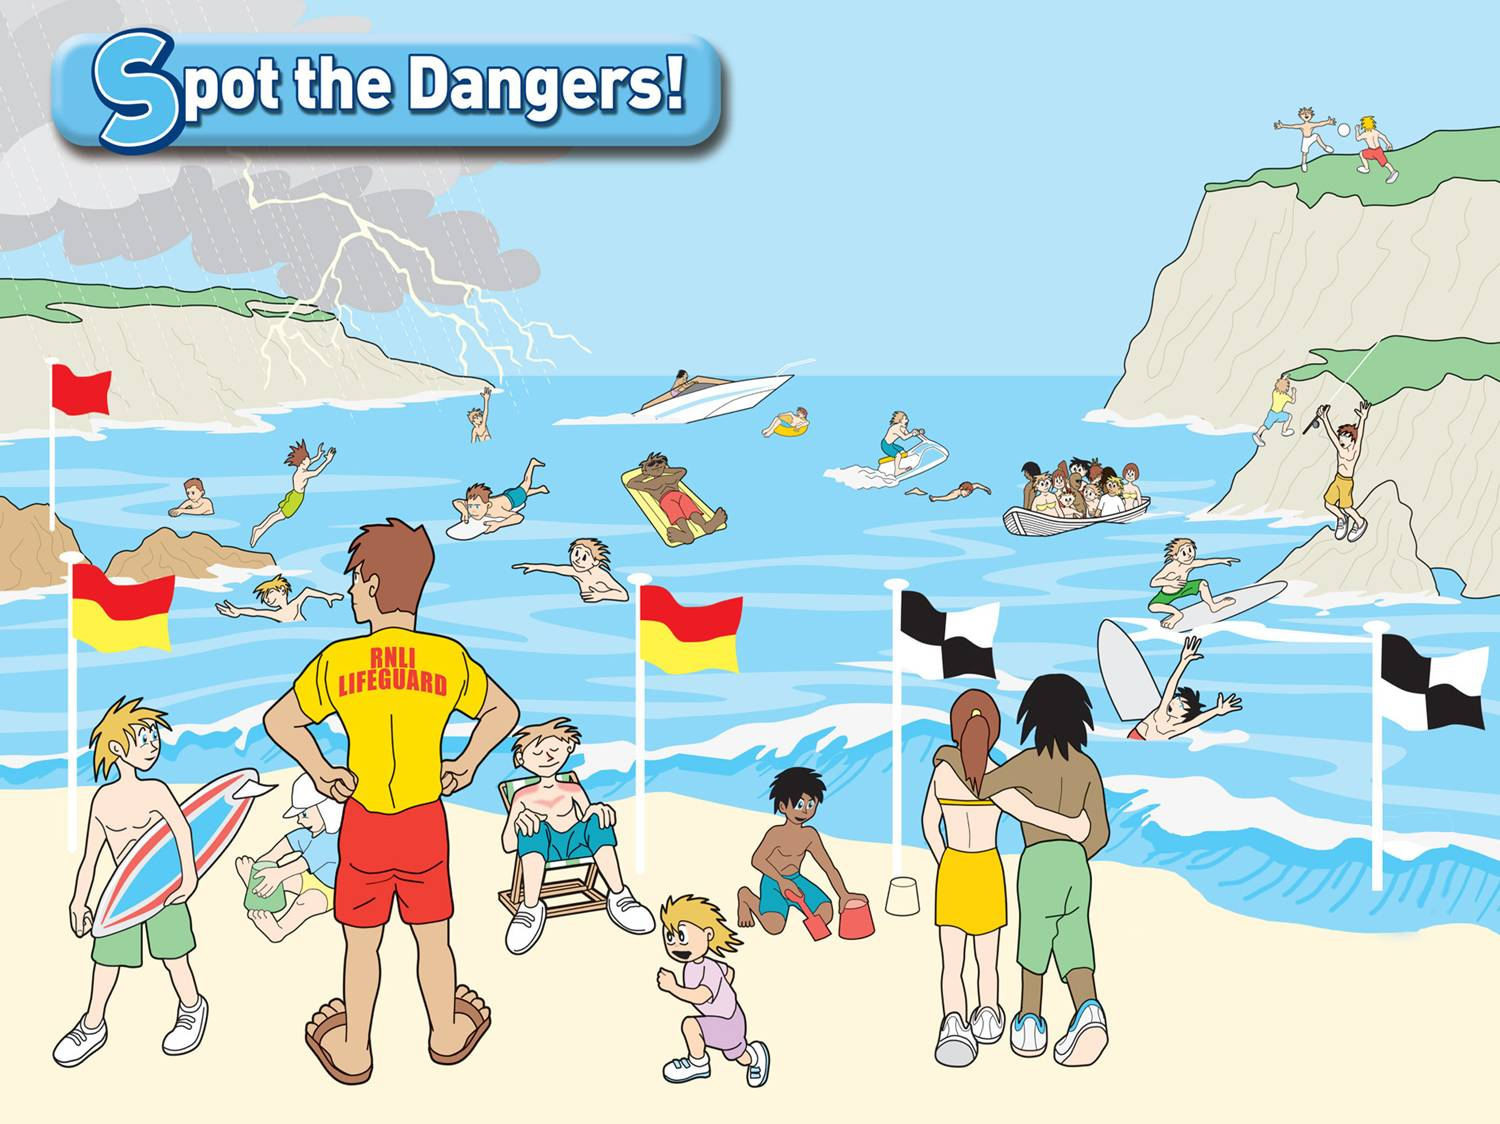 Spot the Dangers banner used in Beach Safety talks